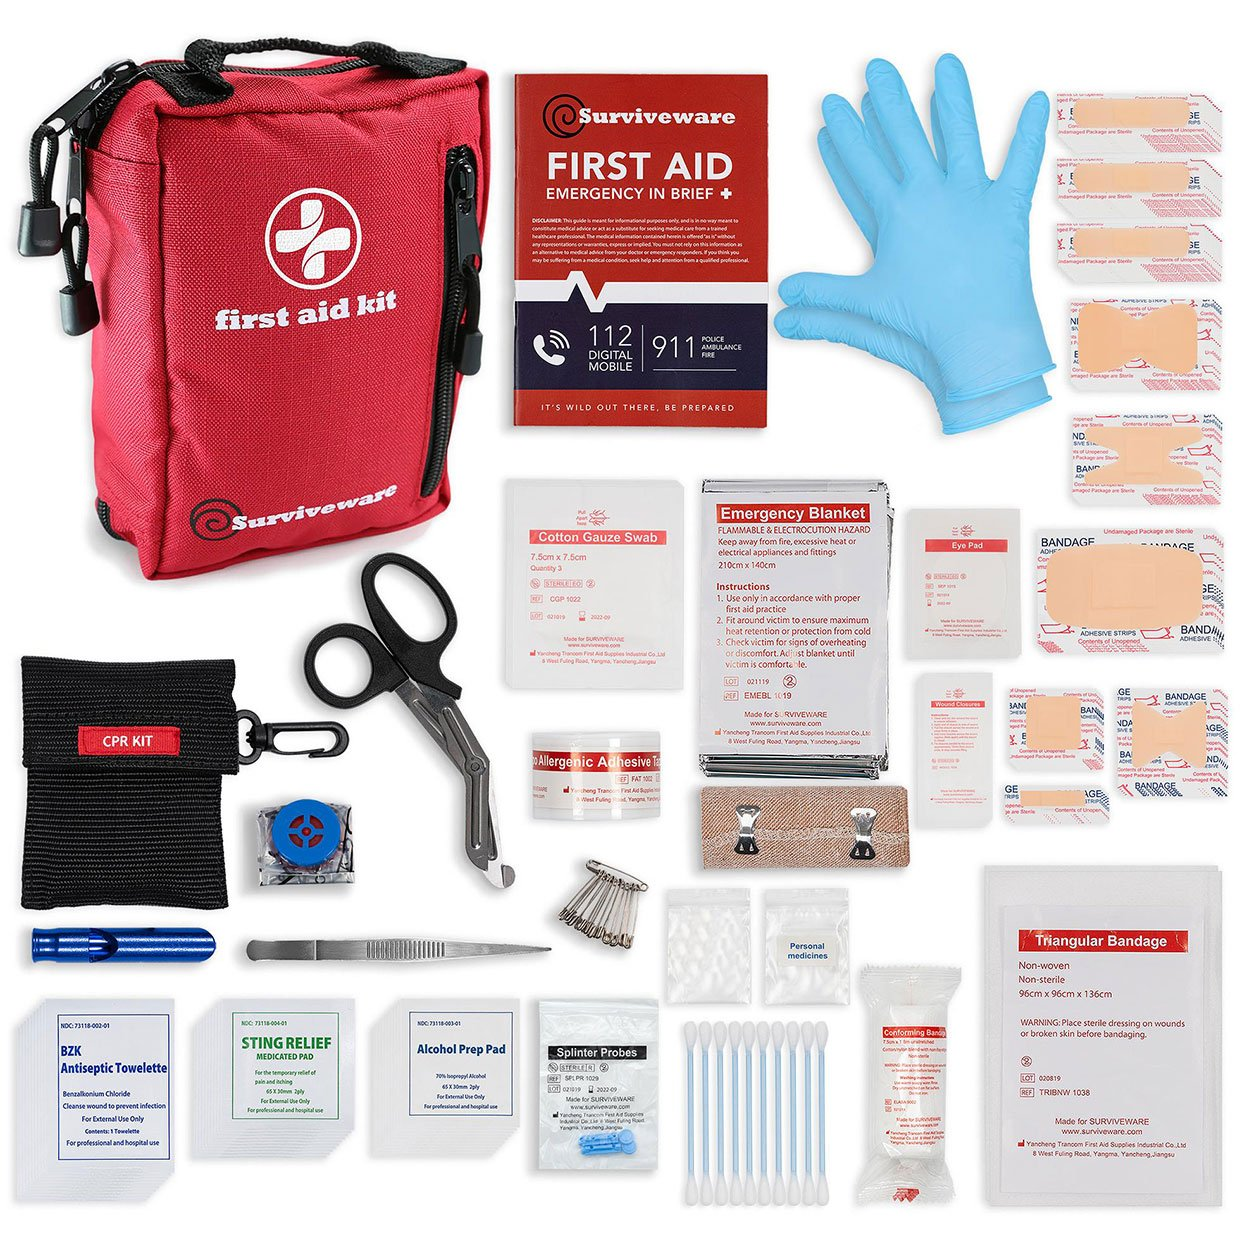 Surviveware Compact First Aid Kit